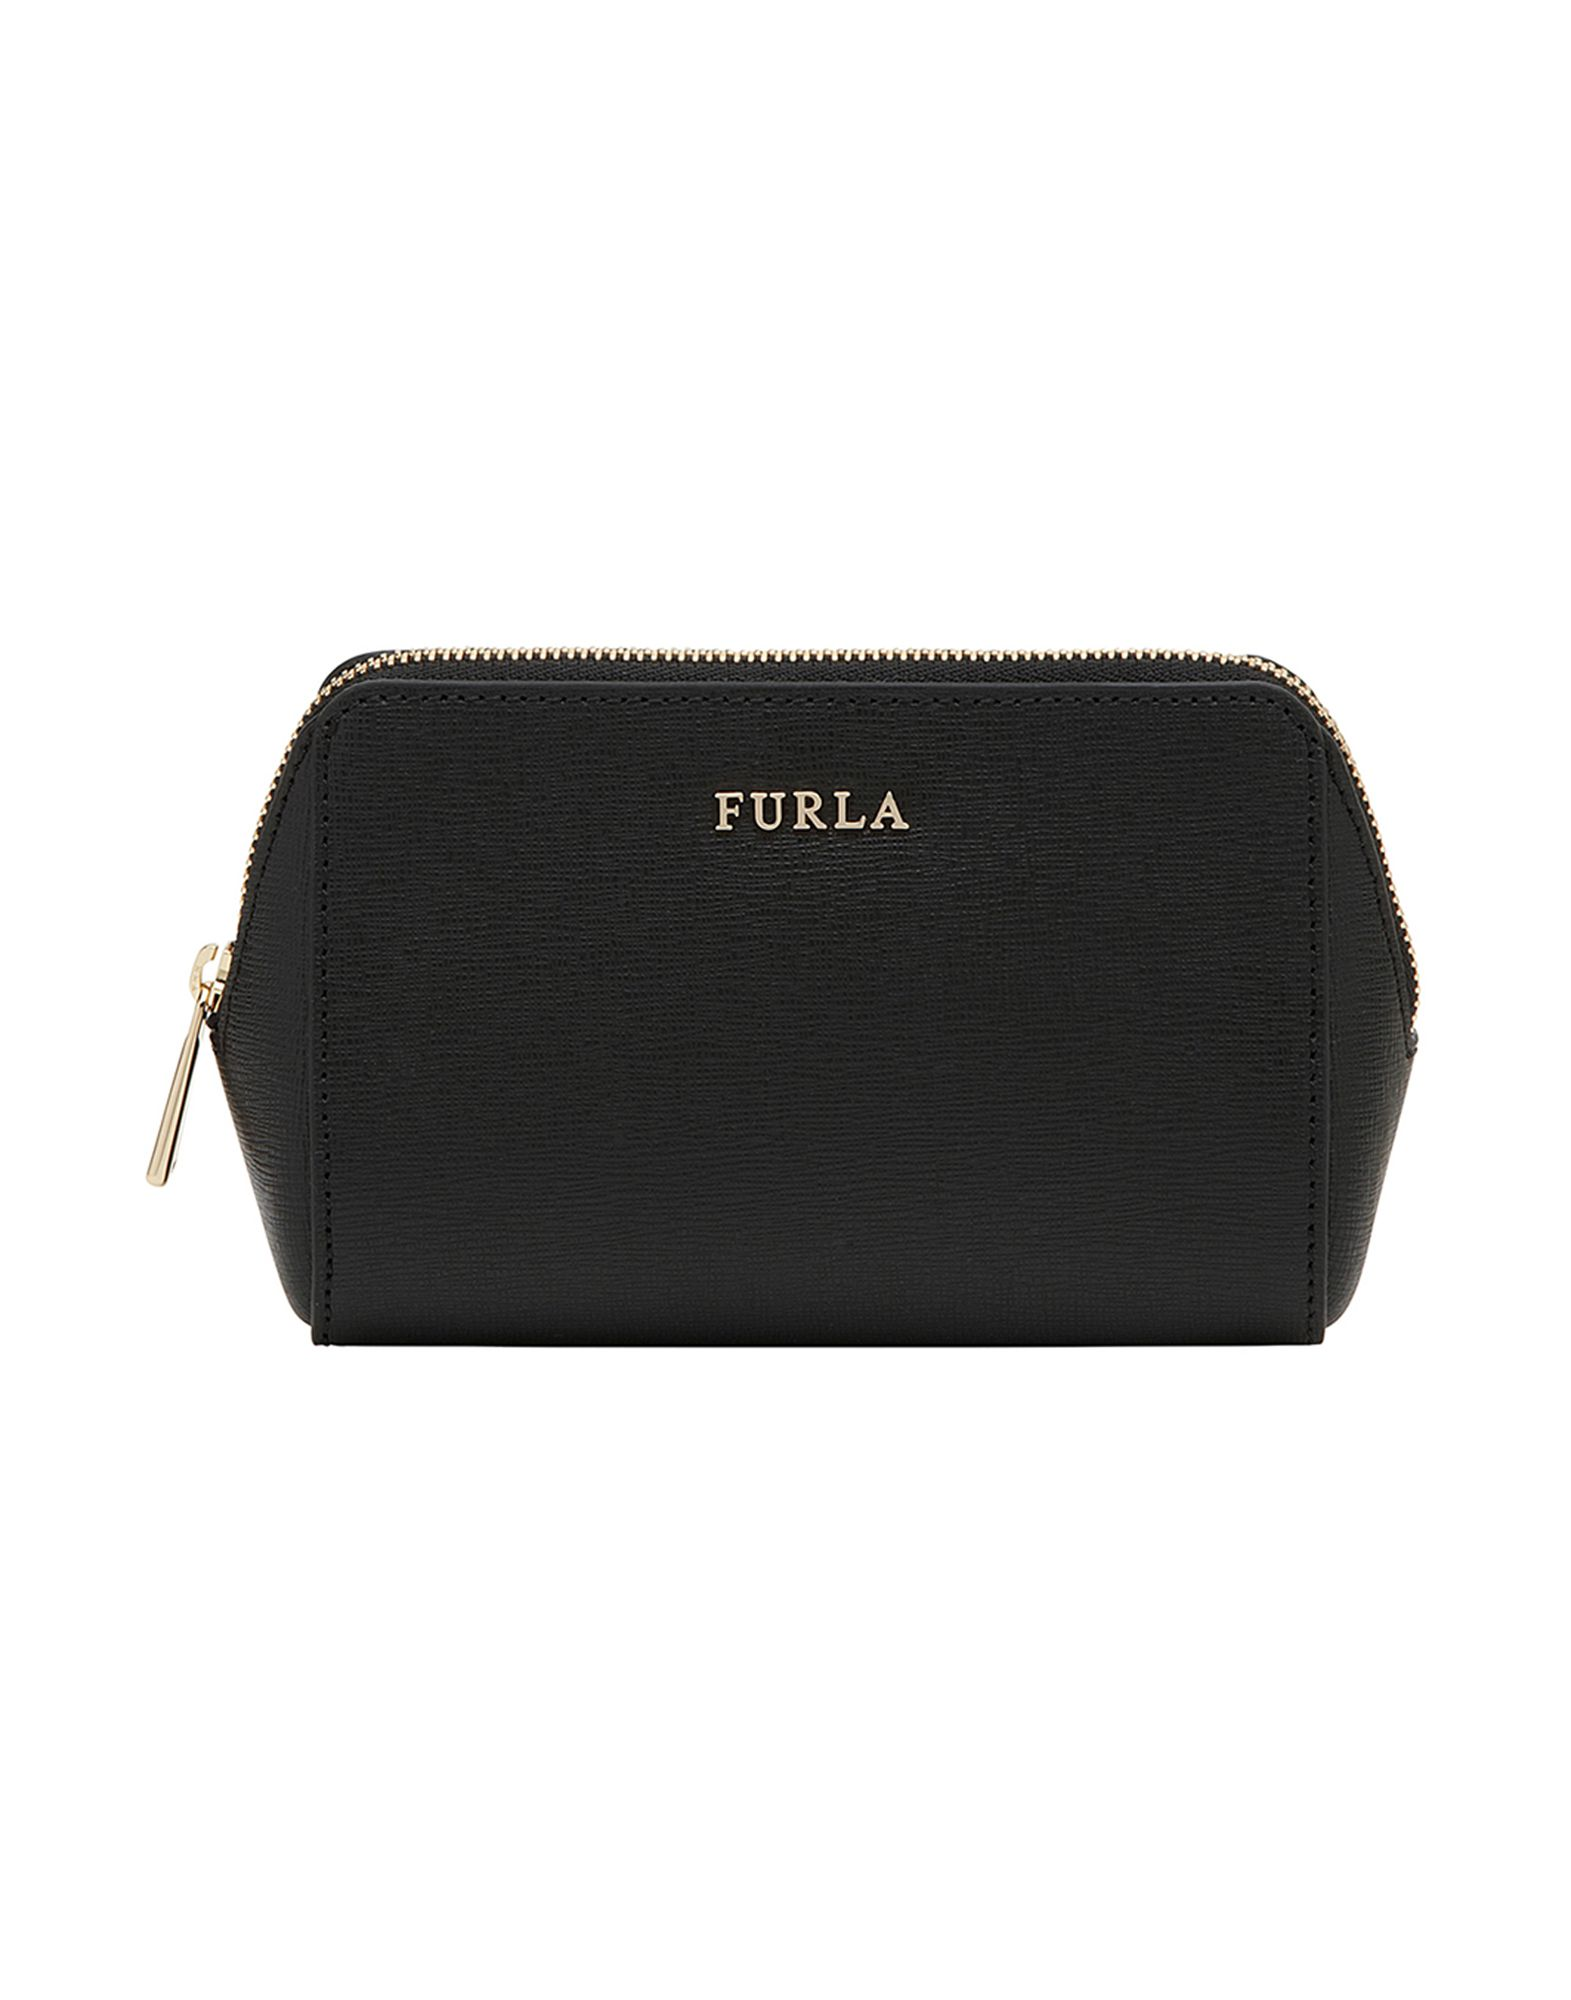 FURLA Beauty case